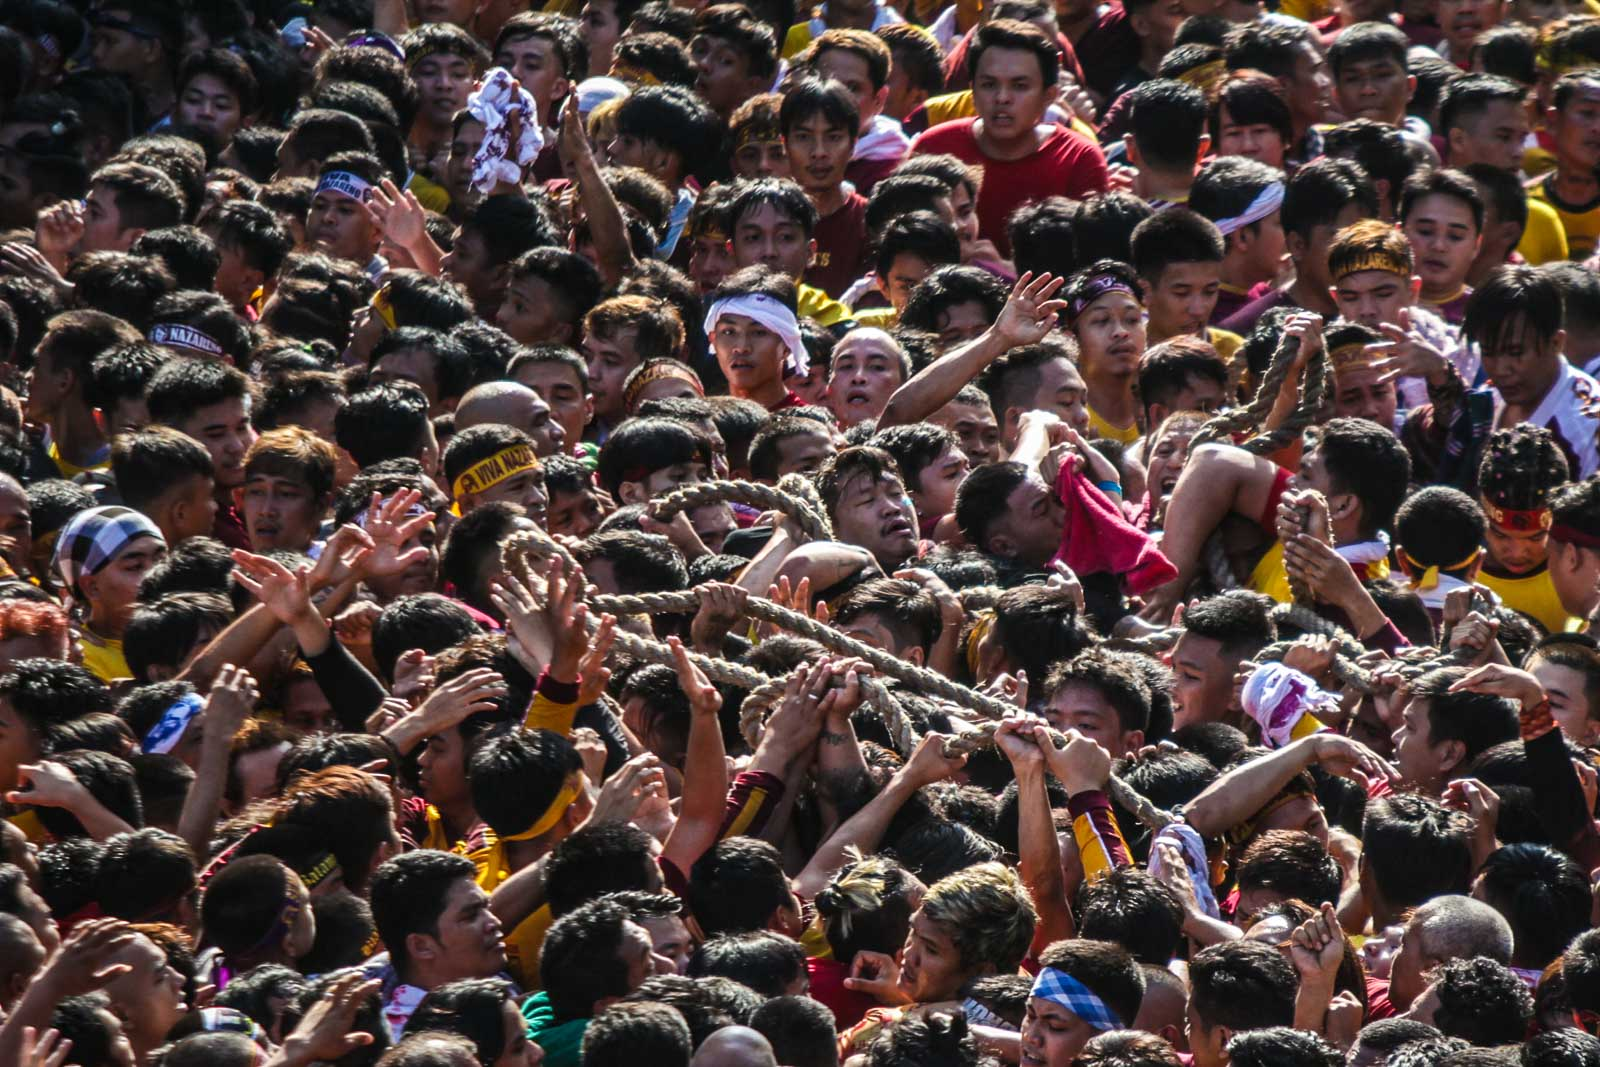 The devotees pull the rope attached to the carriage bearing the image of the Black Nazarene during the Traslacion on January 09, 2020. Photo by Dante Diosina Jr/Rappler